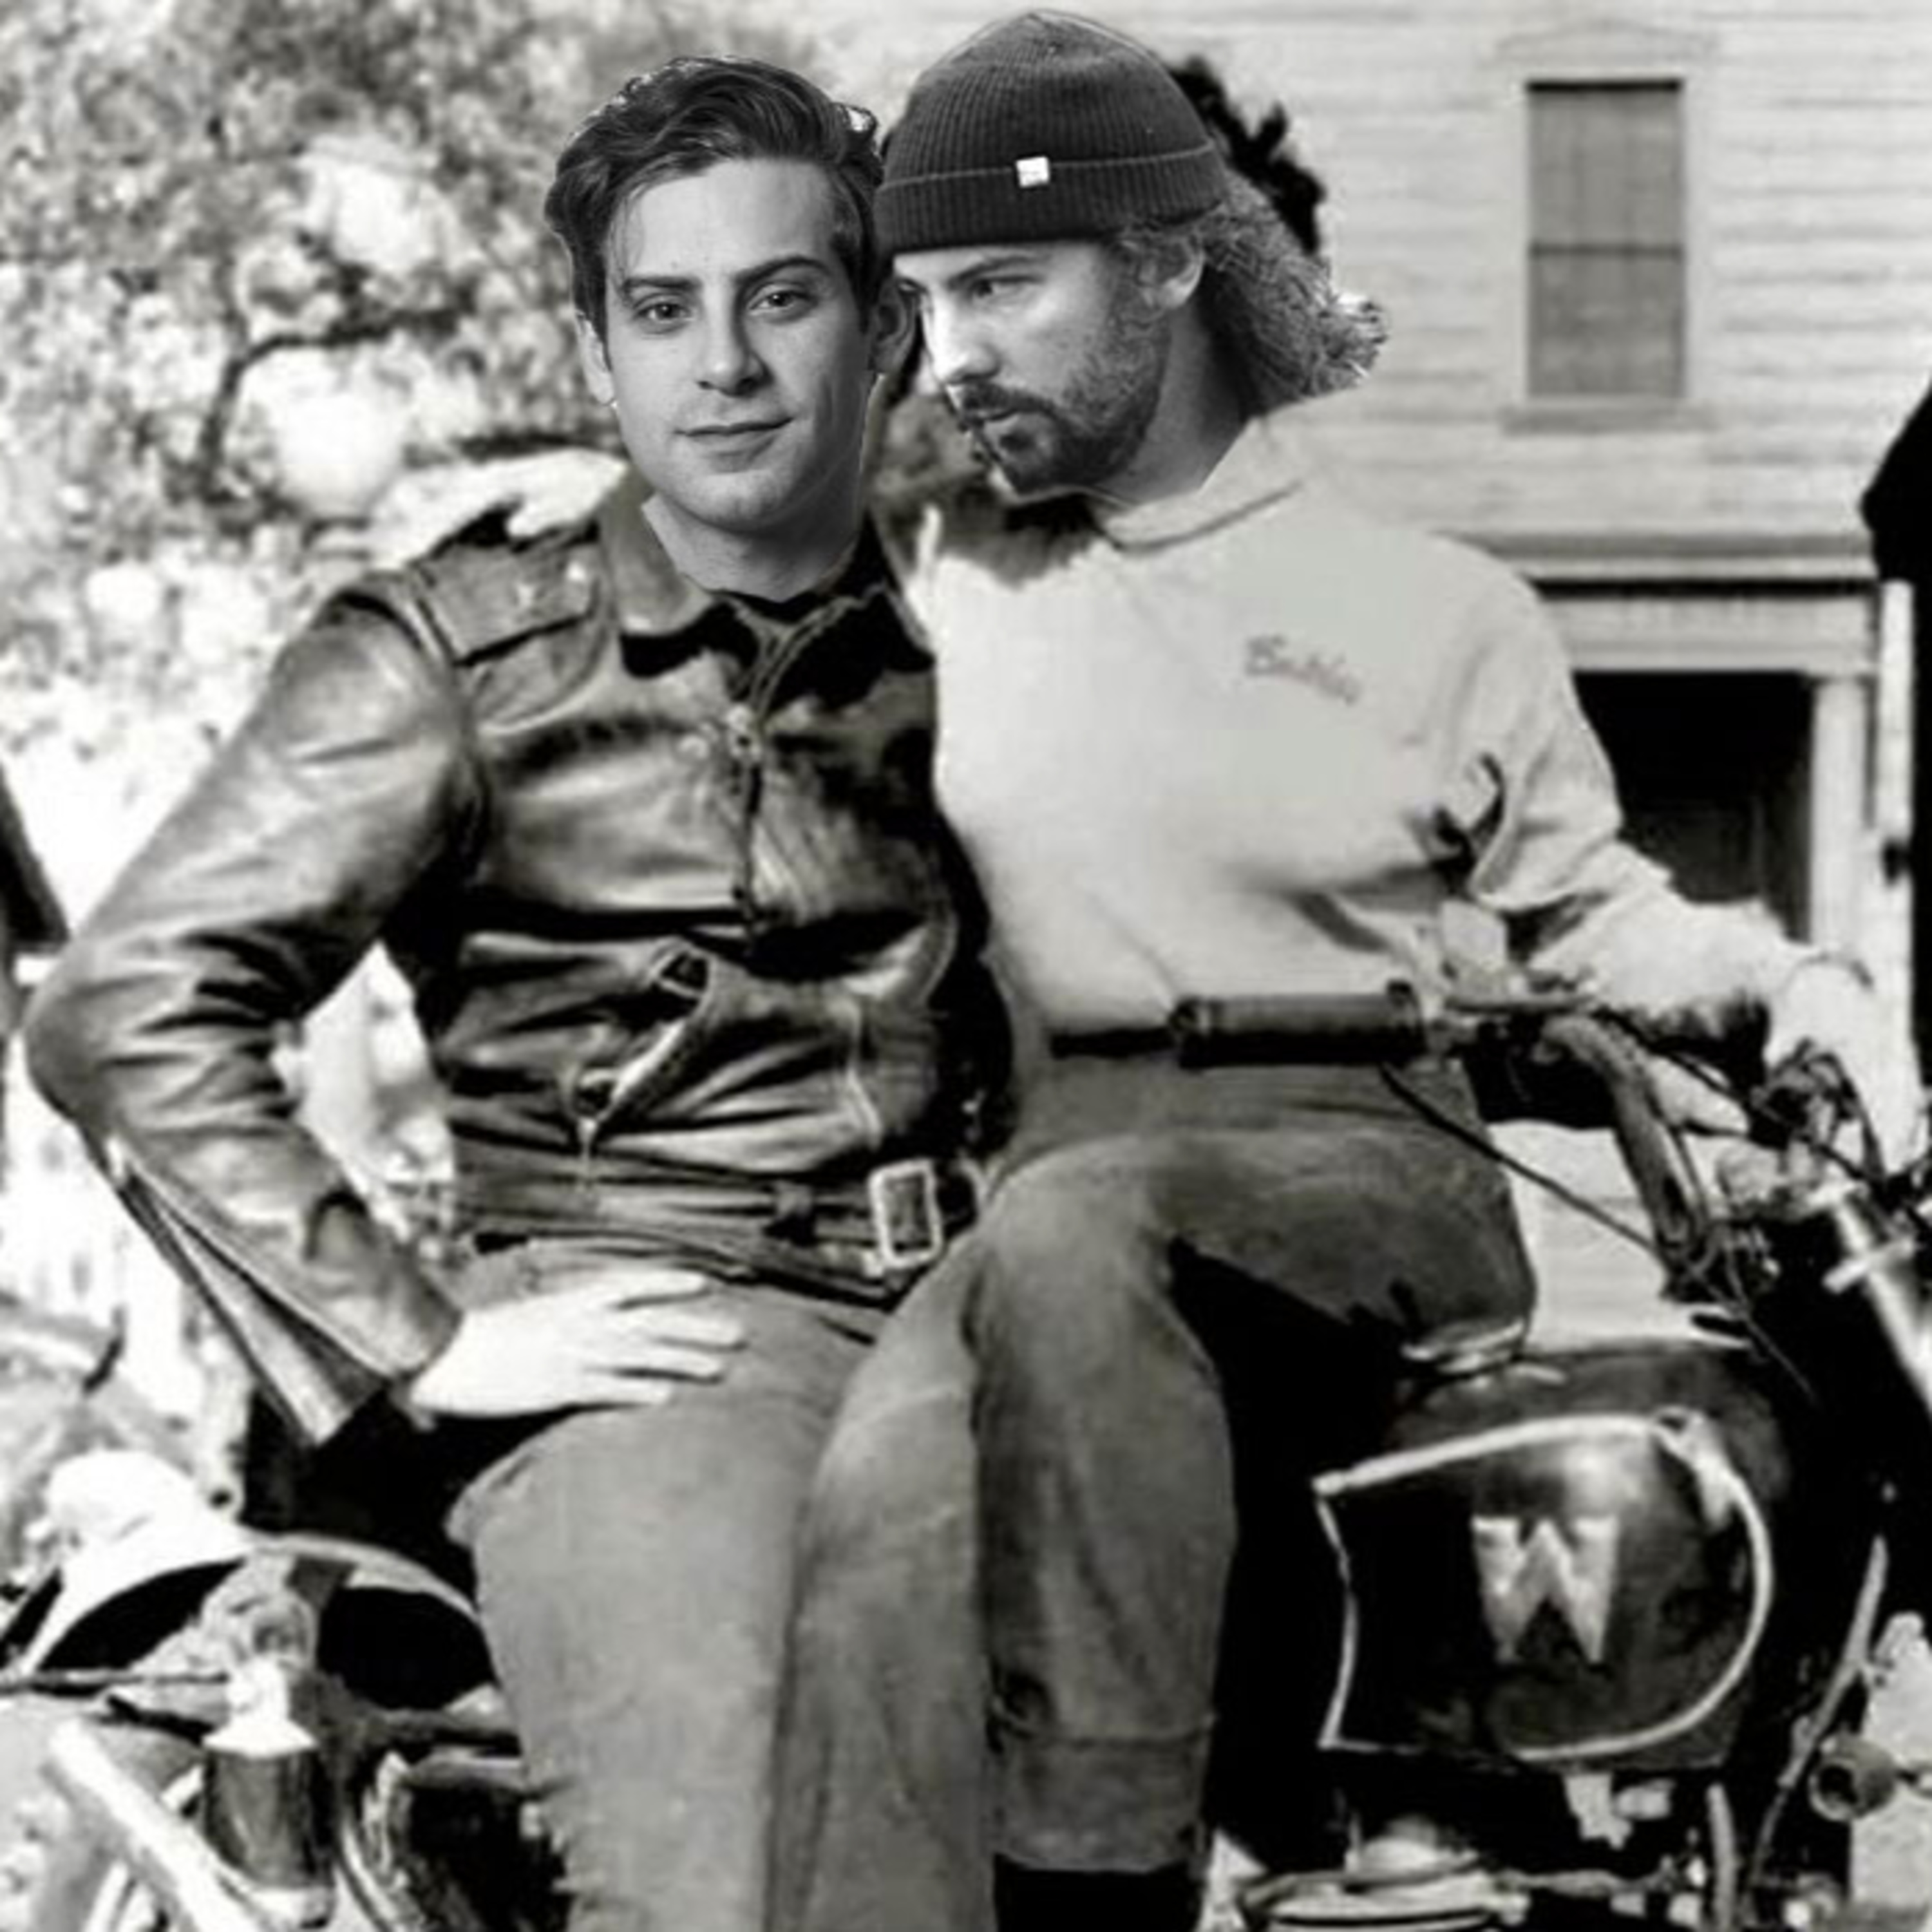 Bonus Blowout - The Wild One (1953) Riff Over Commentary